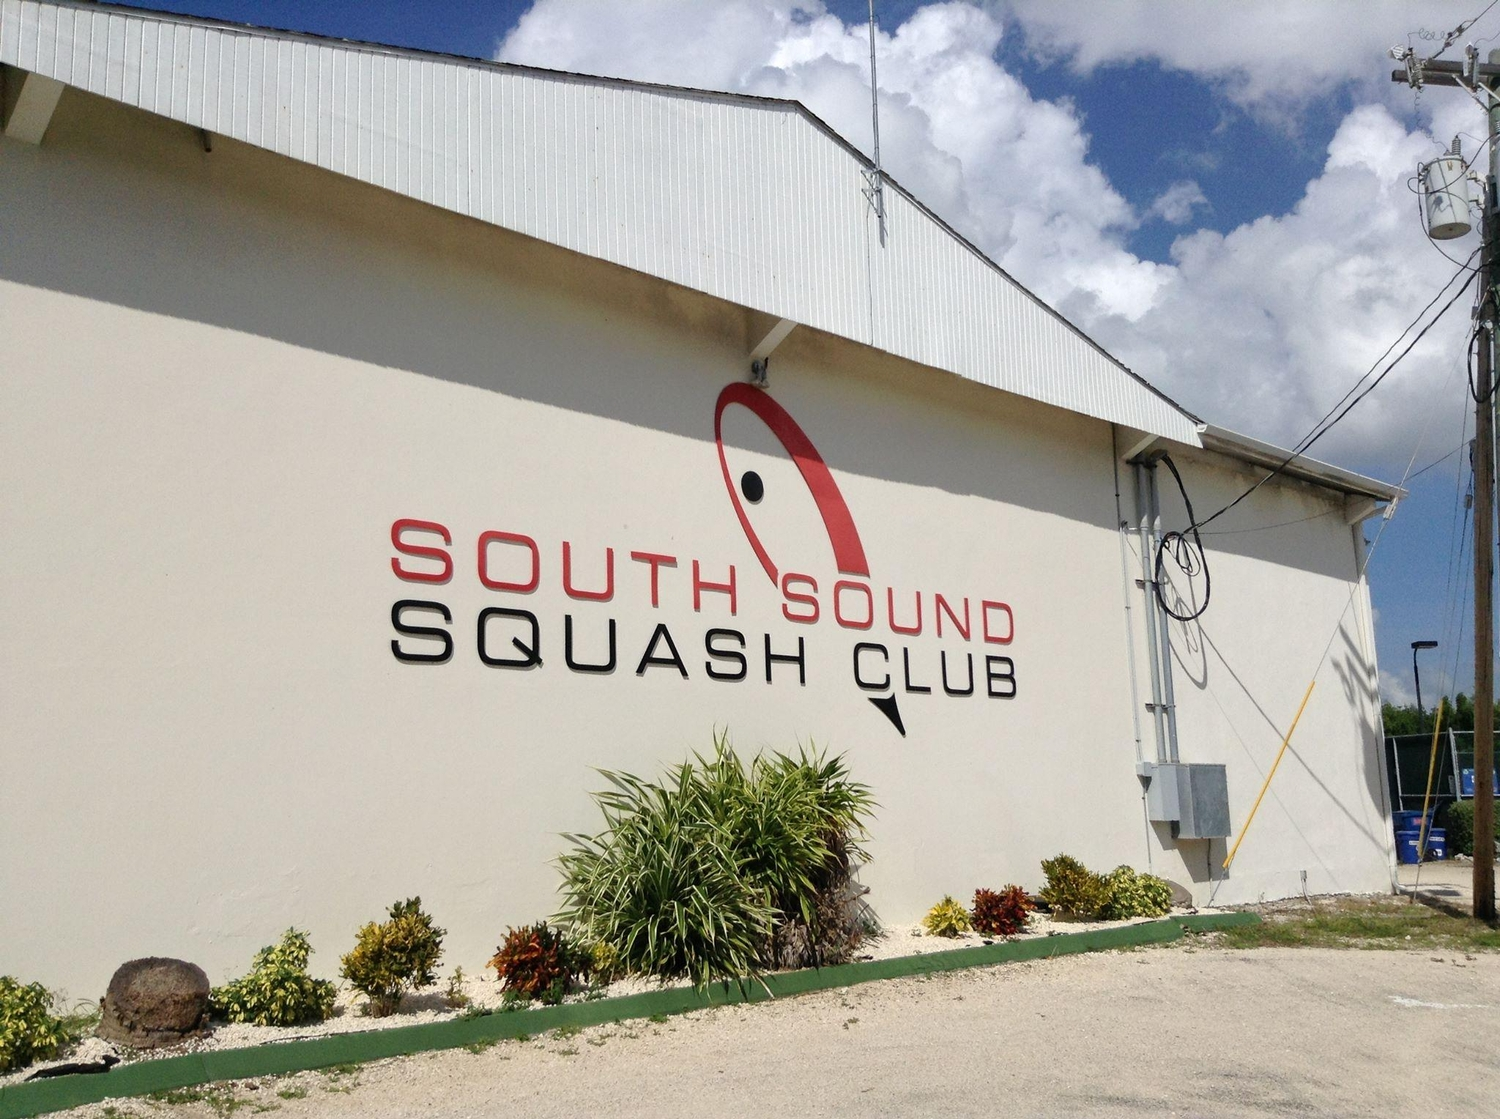 Beige exterior of the south sound squash club building